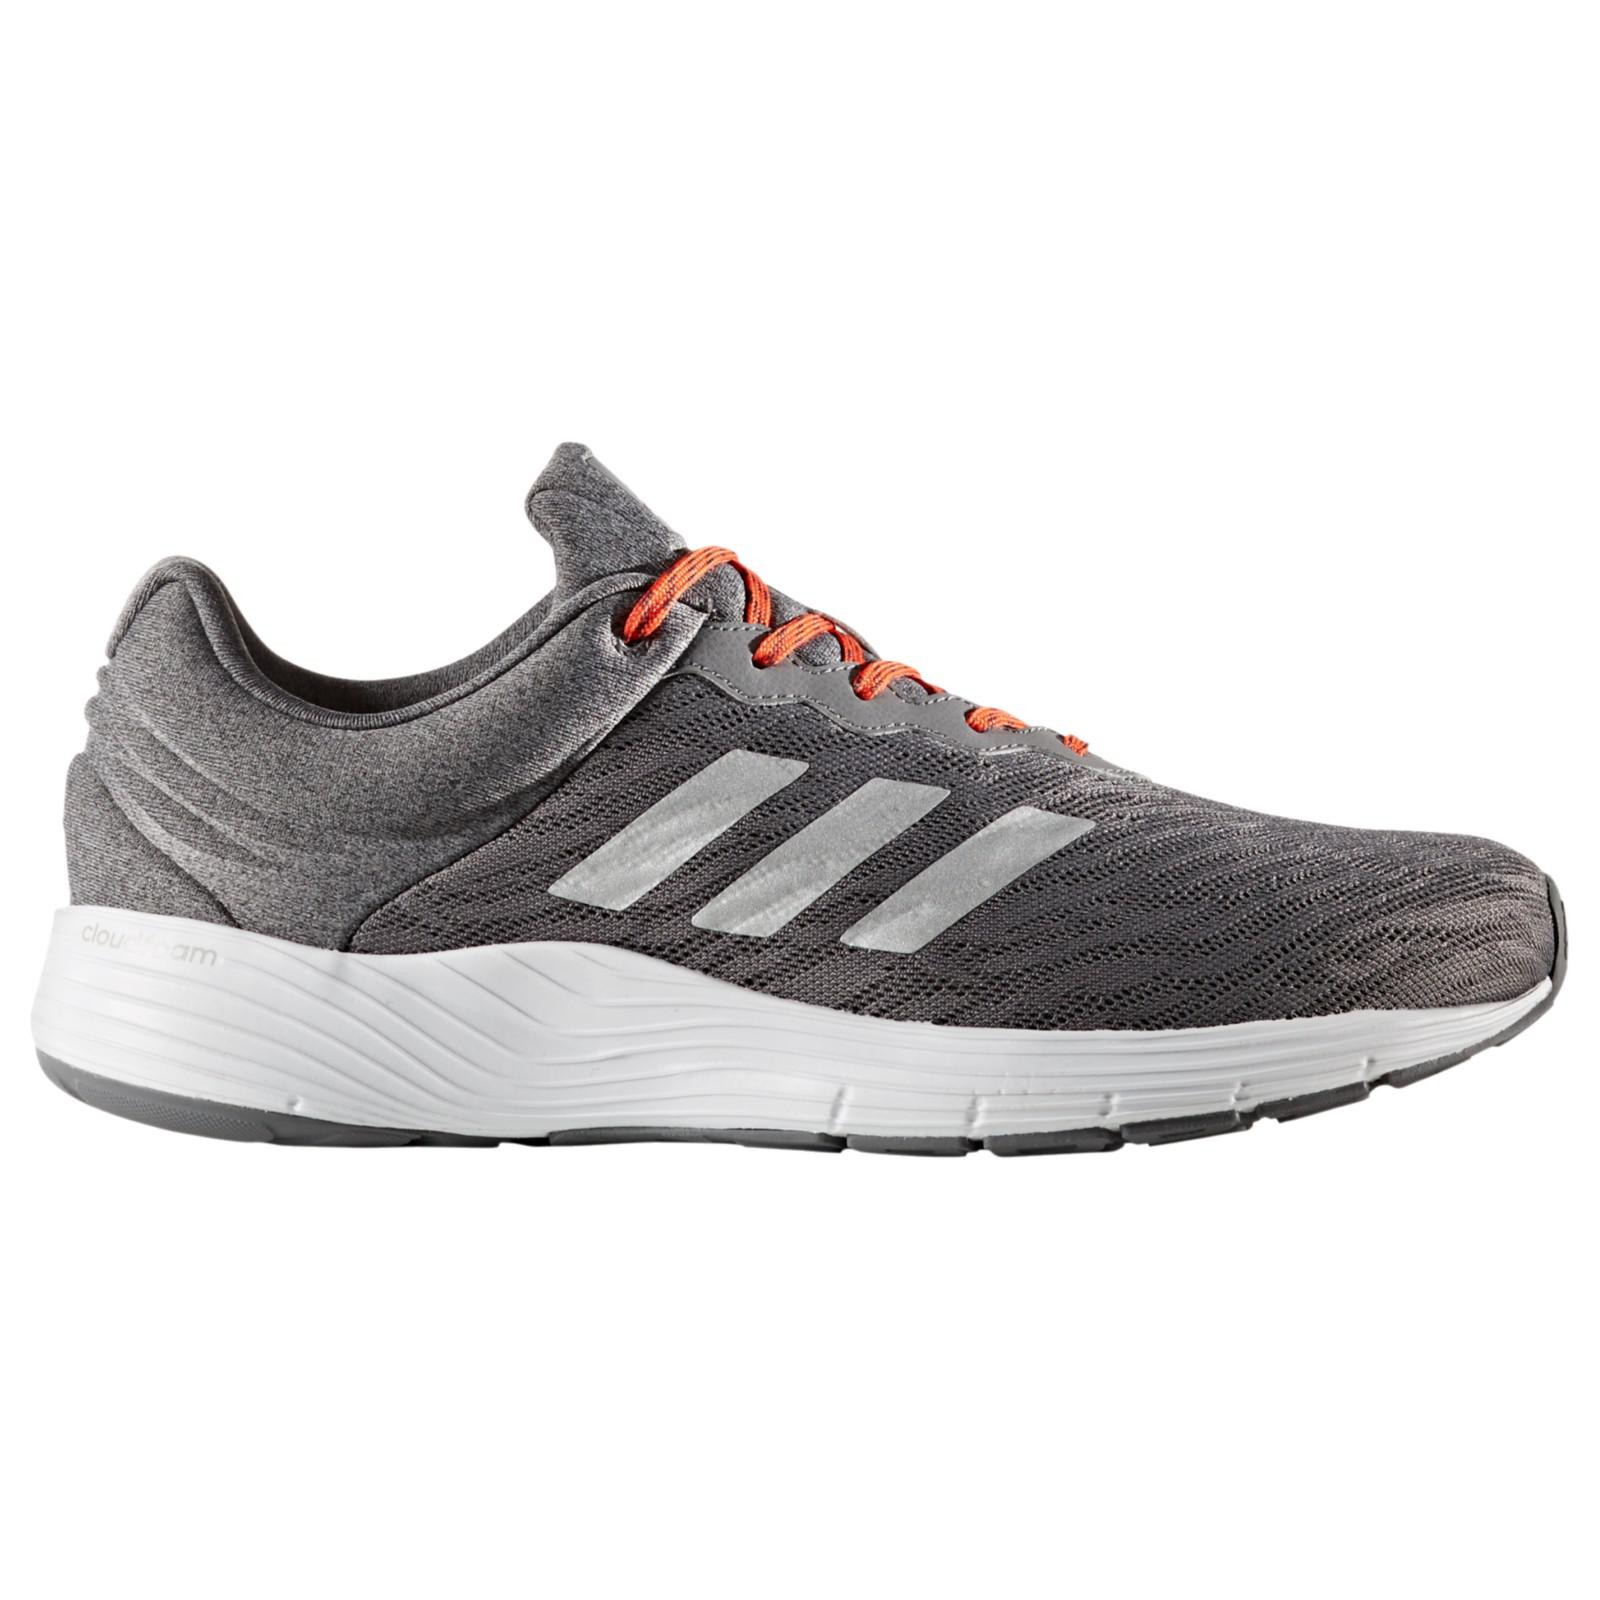 1387a99c0cb405 adidas Fluid Cloud Men s Running Shoes in Gray for Men - Lyst